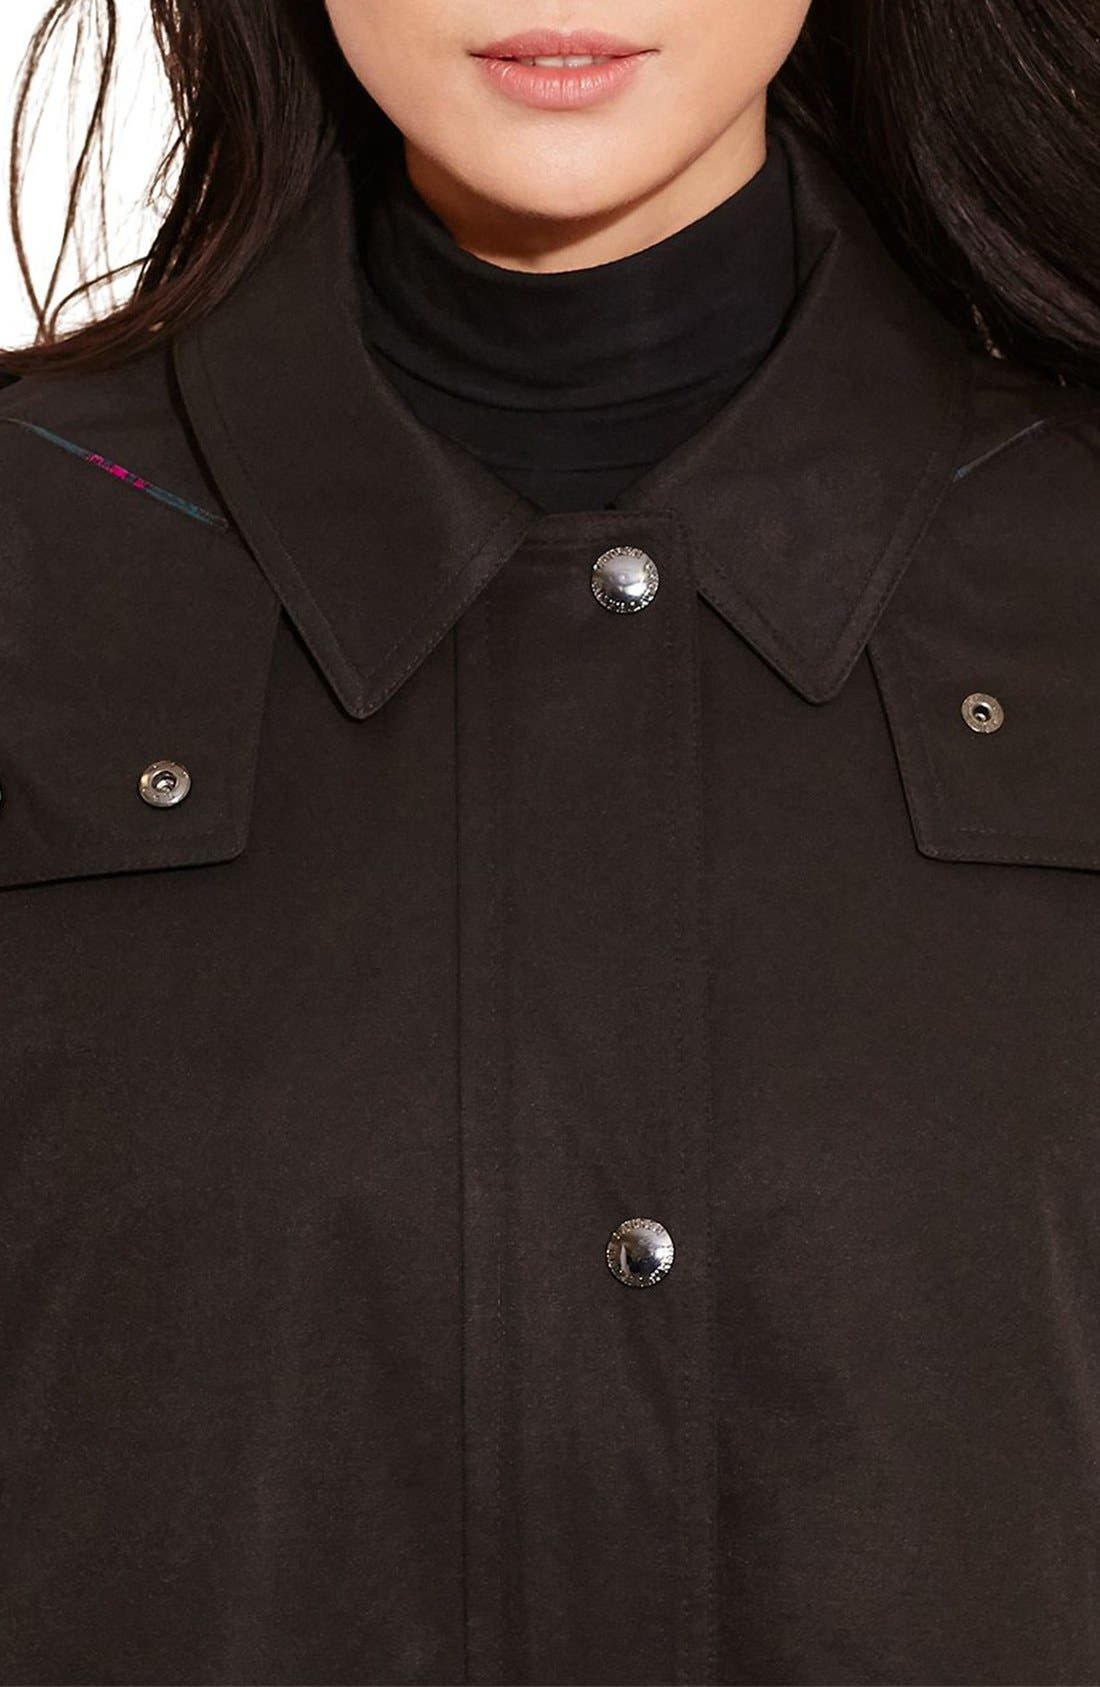 A-Line Jacket with Removable Liner,                             Alternate thumbnail 3, color,                             001